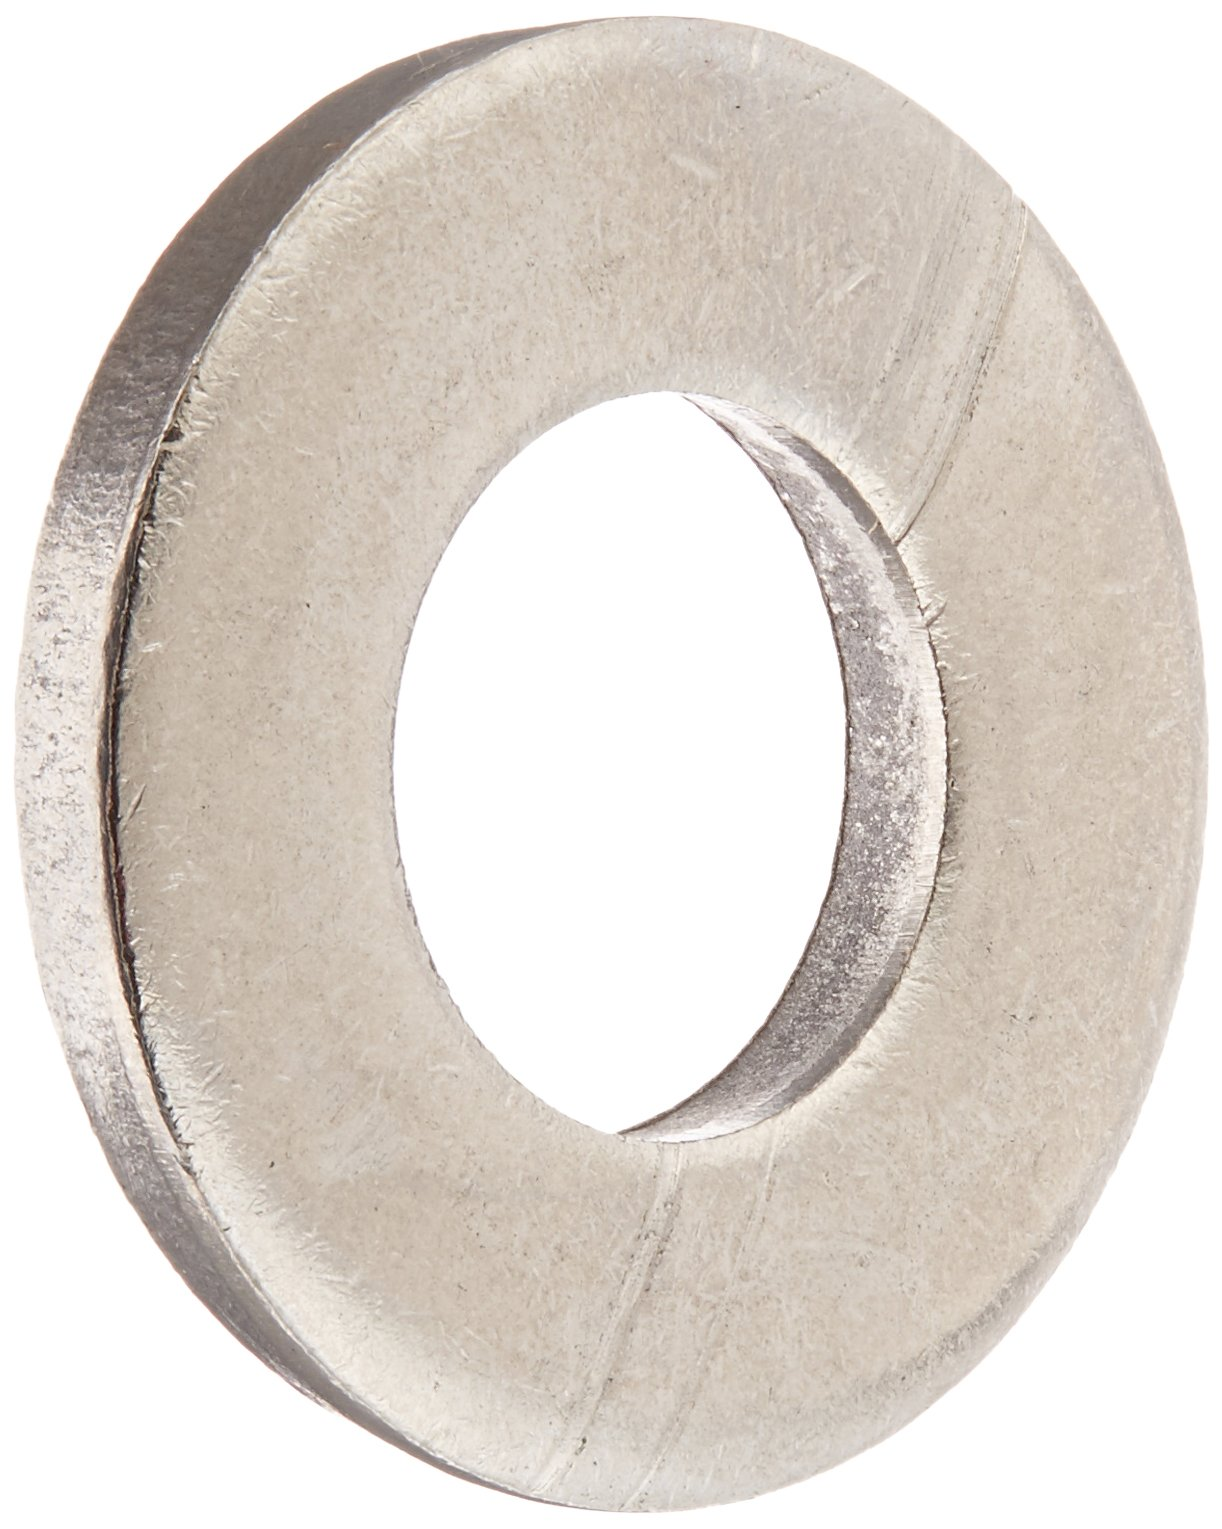 Morton TW-5SS Stainless Steel 300 Heavy Duty Washer, 9/16 Bolt Size, 19/32 ID x 1-3/16 OD, 3/16 Thick (Pack of 10)